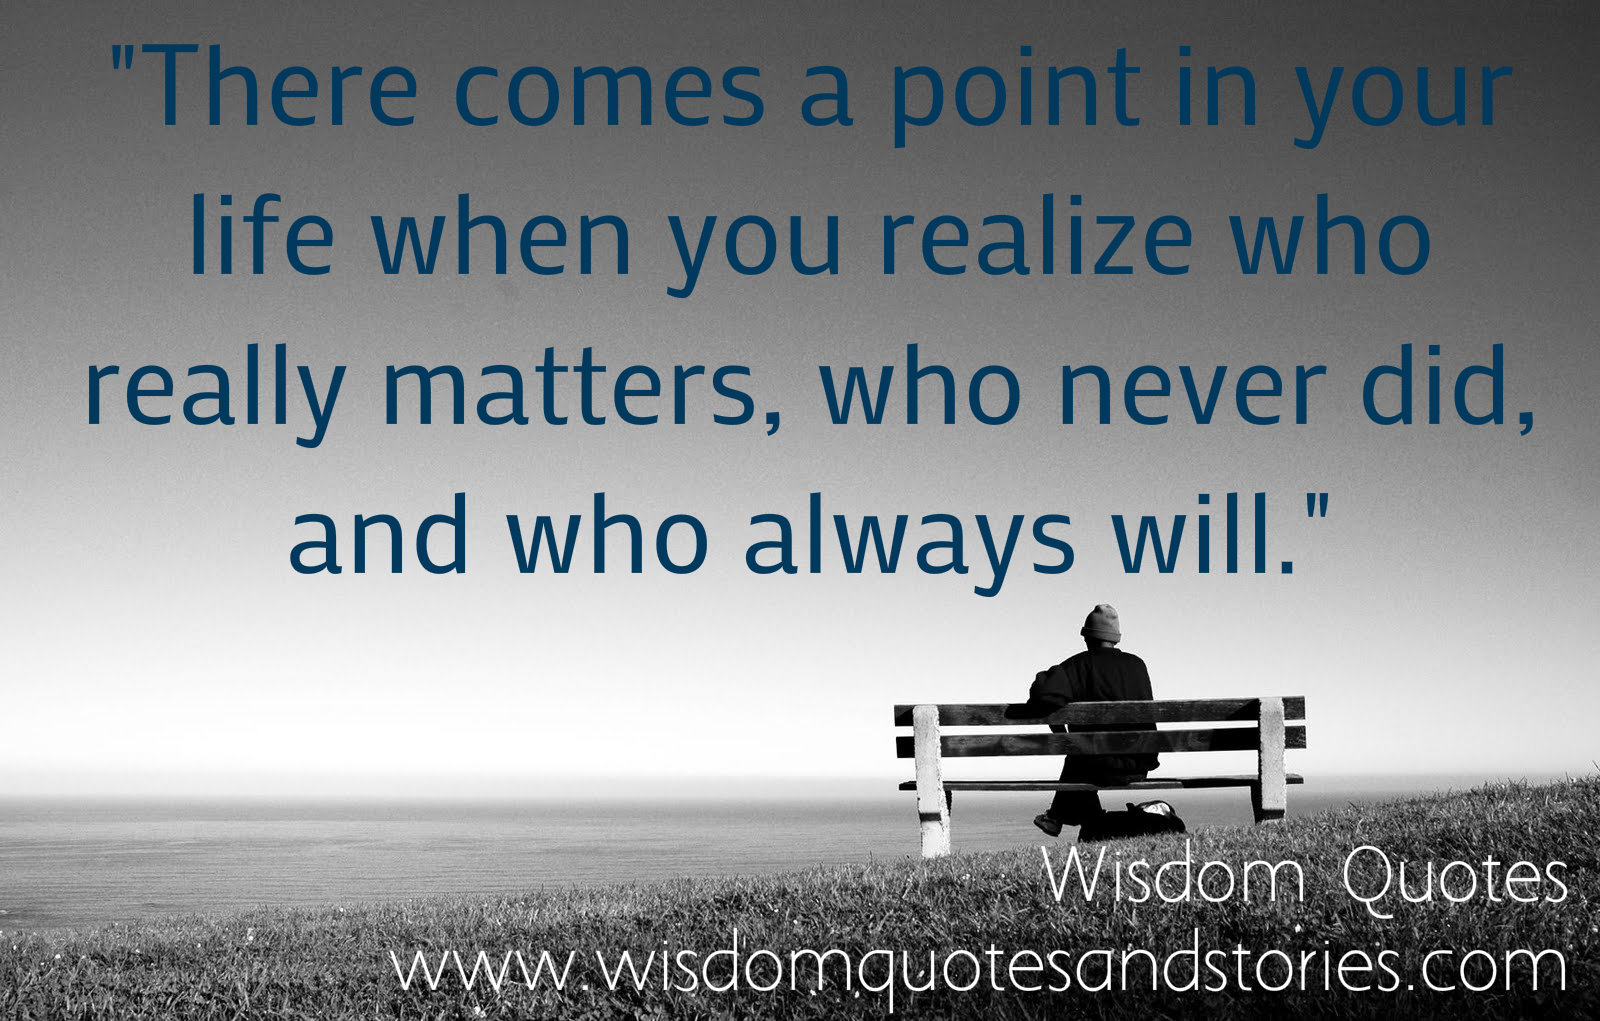 There comes a point in your life when you realize who matters , who never did and who always will